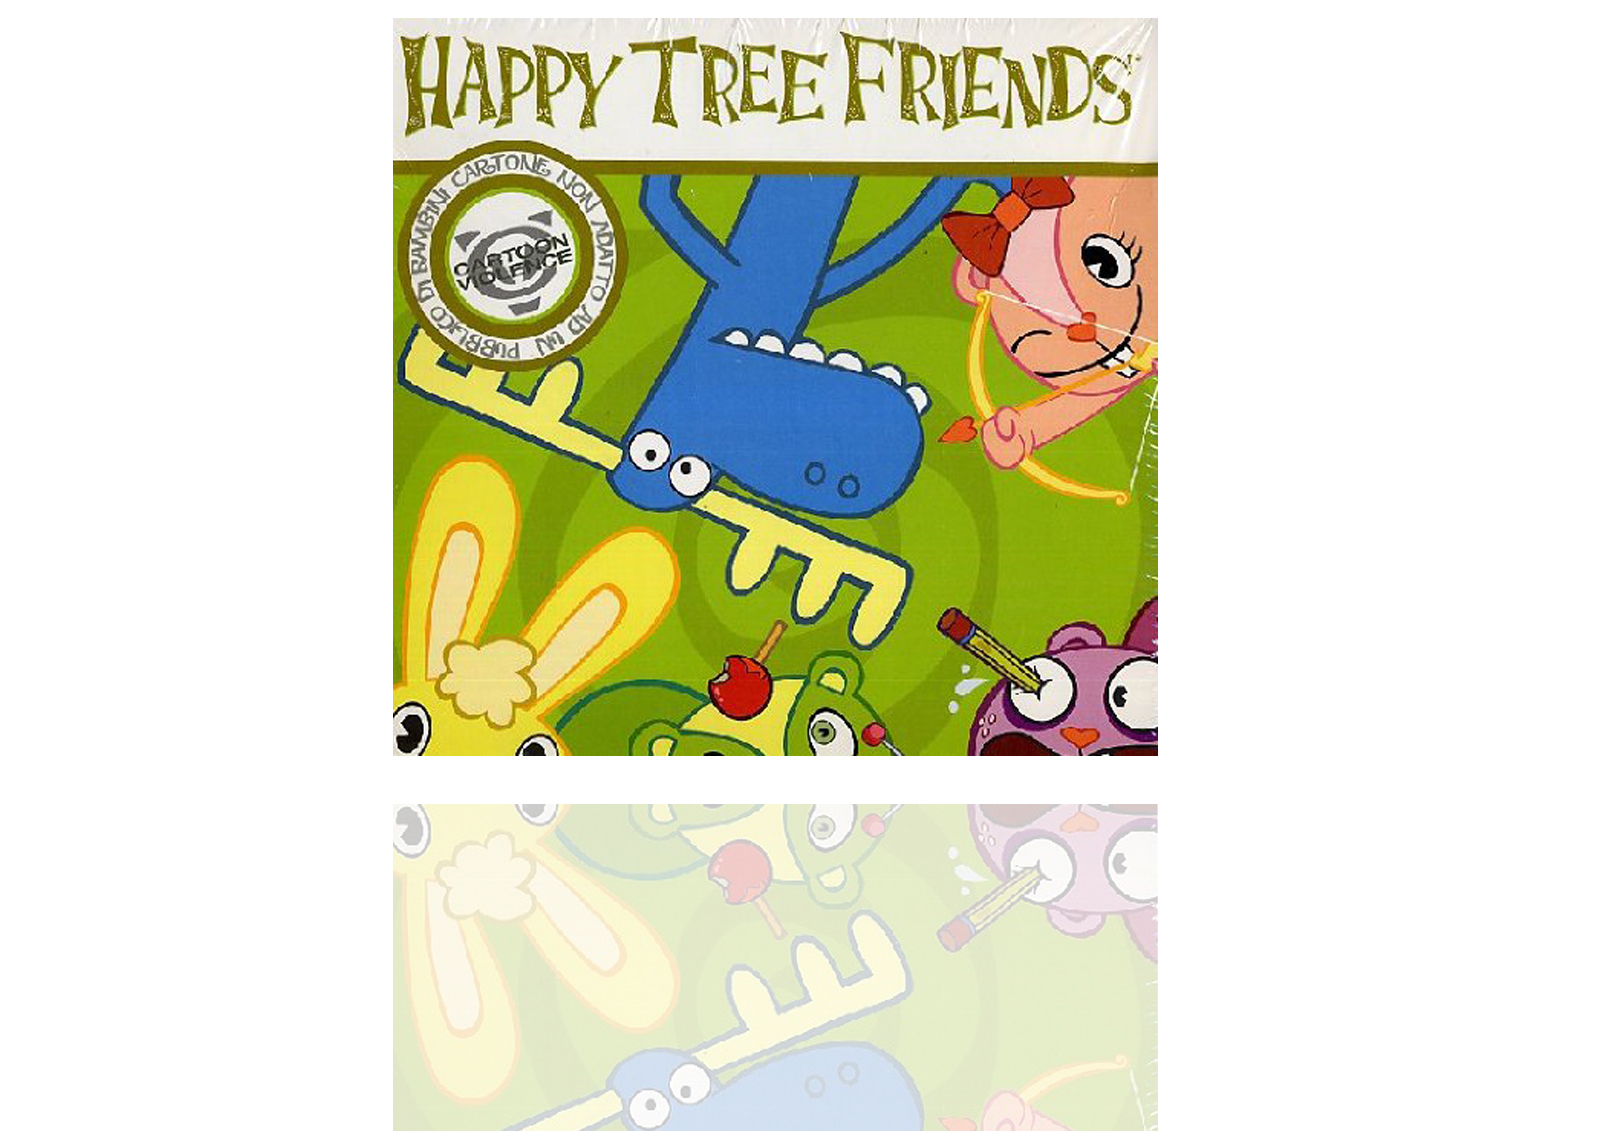 Mystery box, Happy Tree friends, 4 DVDS of which Christmas 1, t-shirt